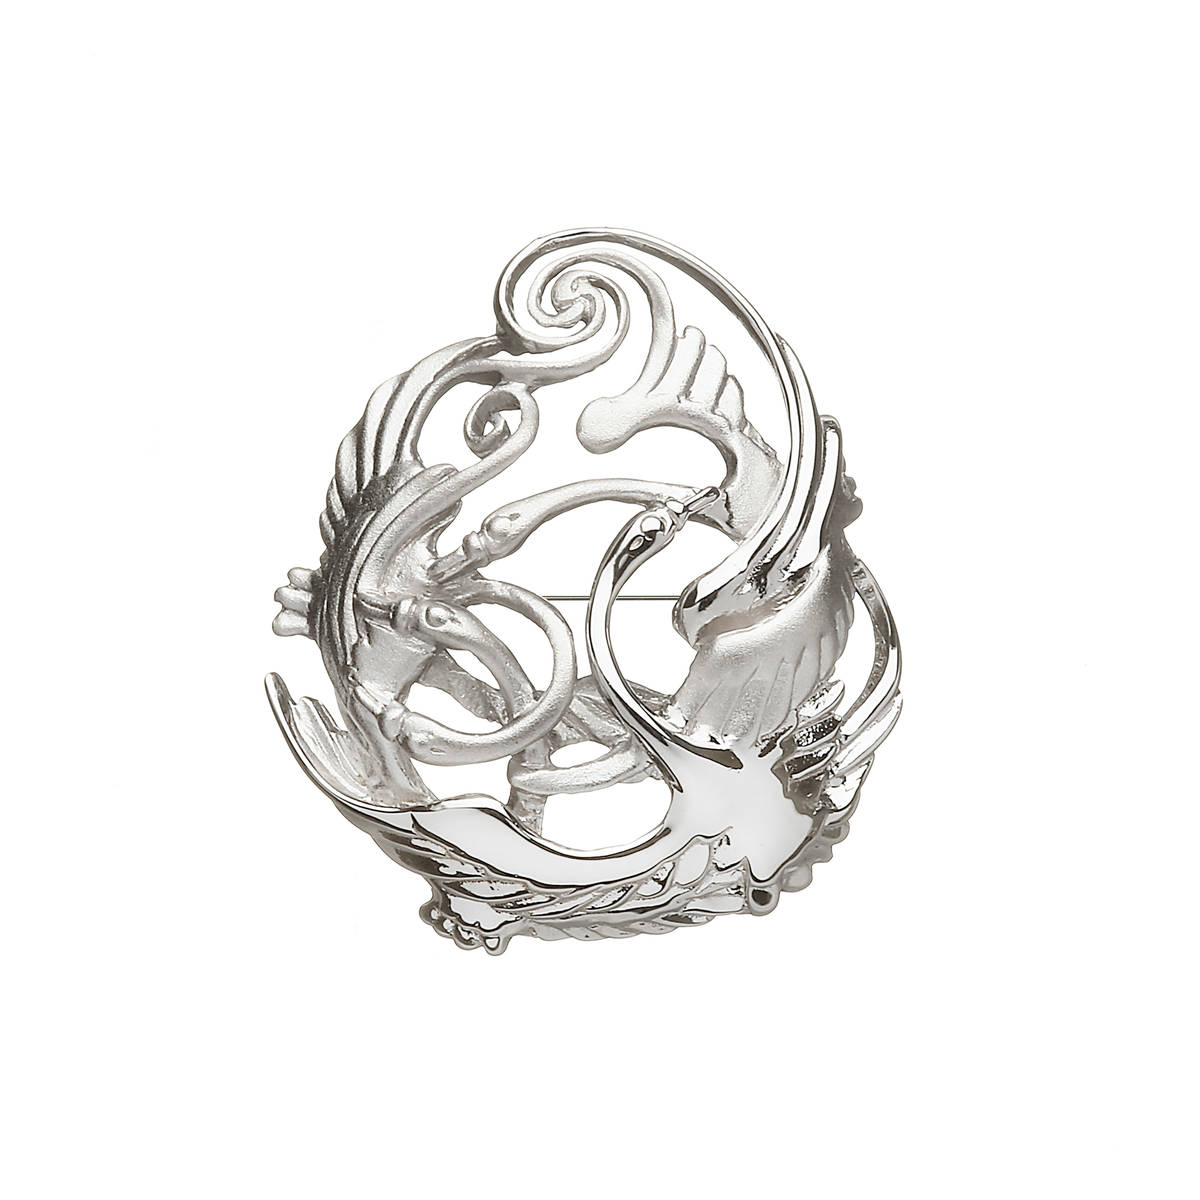 Silver Children of Lir brooch representing the swans who were the bewitched children of Lir.Please read the story of the fable about them in the Lir section.